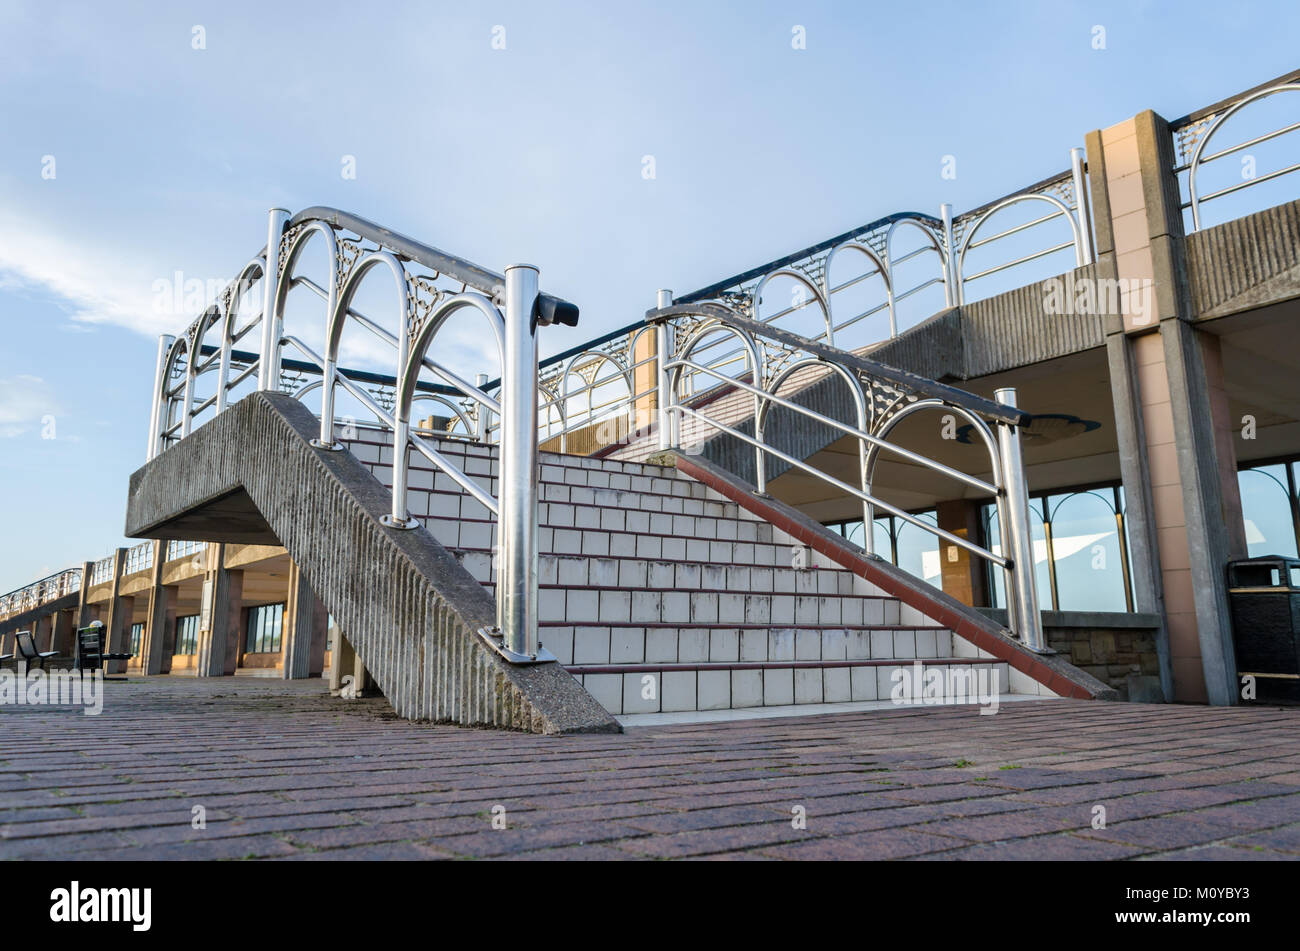 Ornate Stairway At The Arcade Located At The Amphitheatre, South Shields    Stock Image